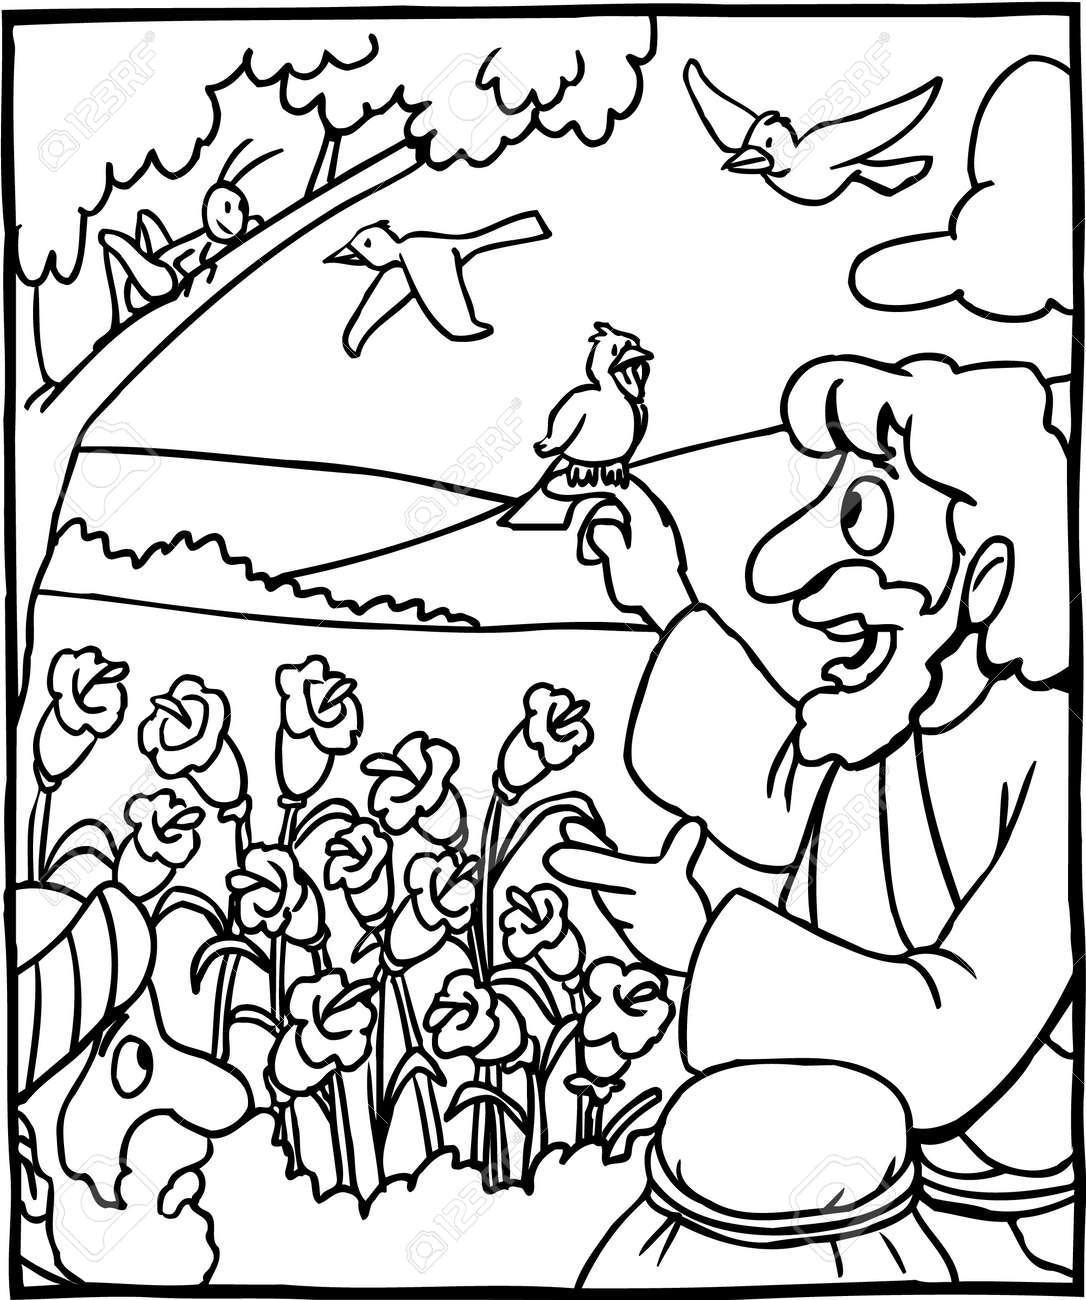 Good Shepherd Coloring Pages Free - Coloring Home | 1300x1085